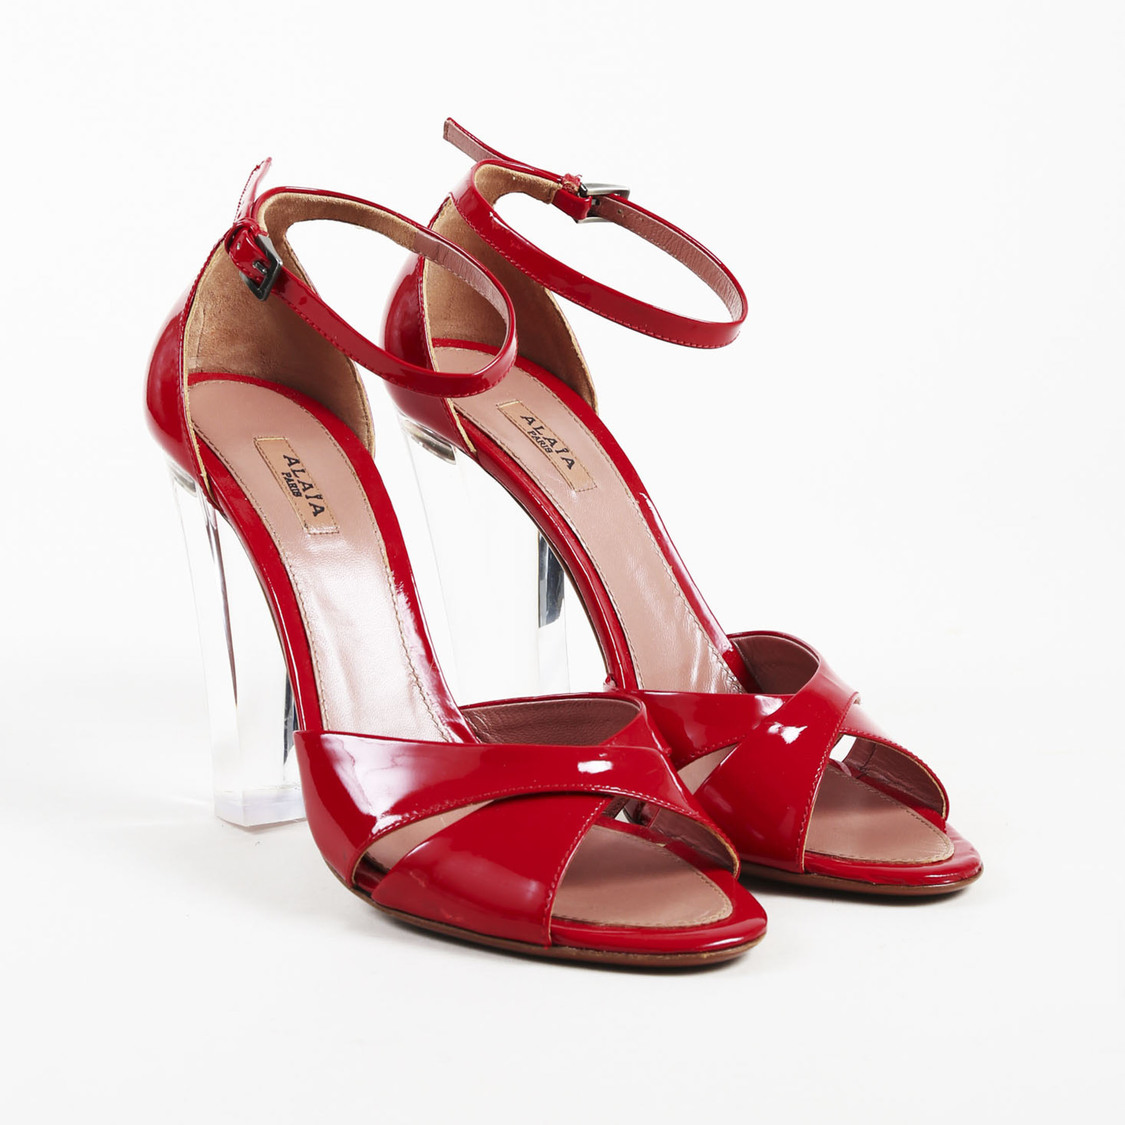 Details about Alaia Red Patent Leather Lucite Heel Ankle Strap Sandals SZ  38.5